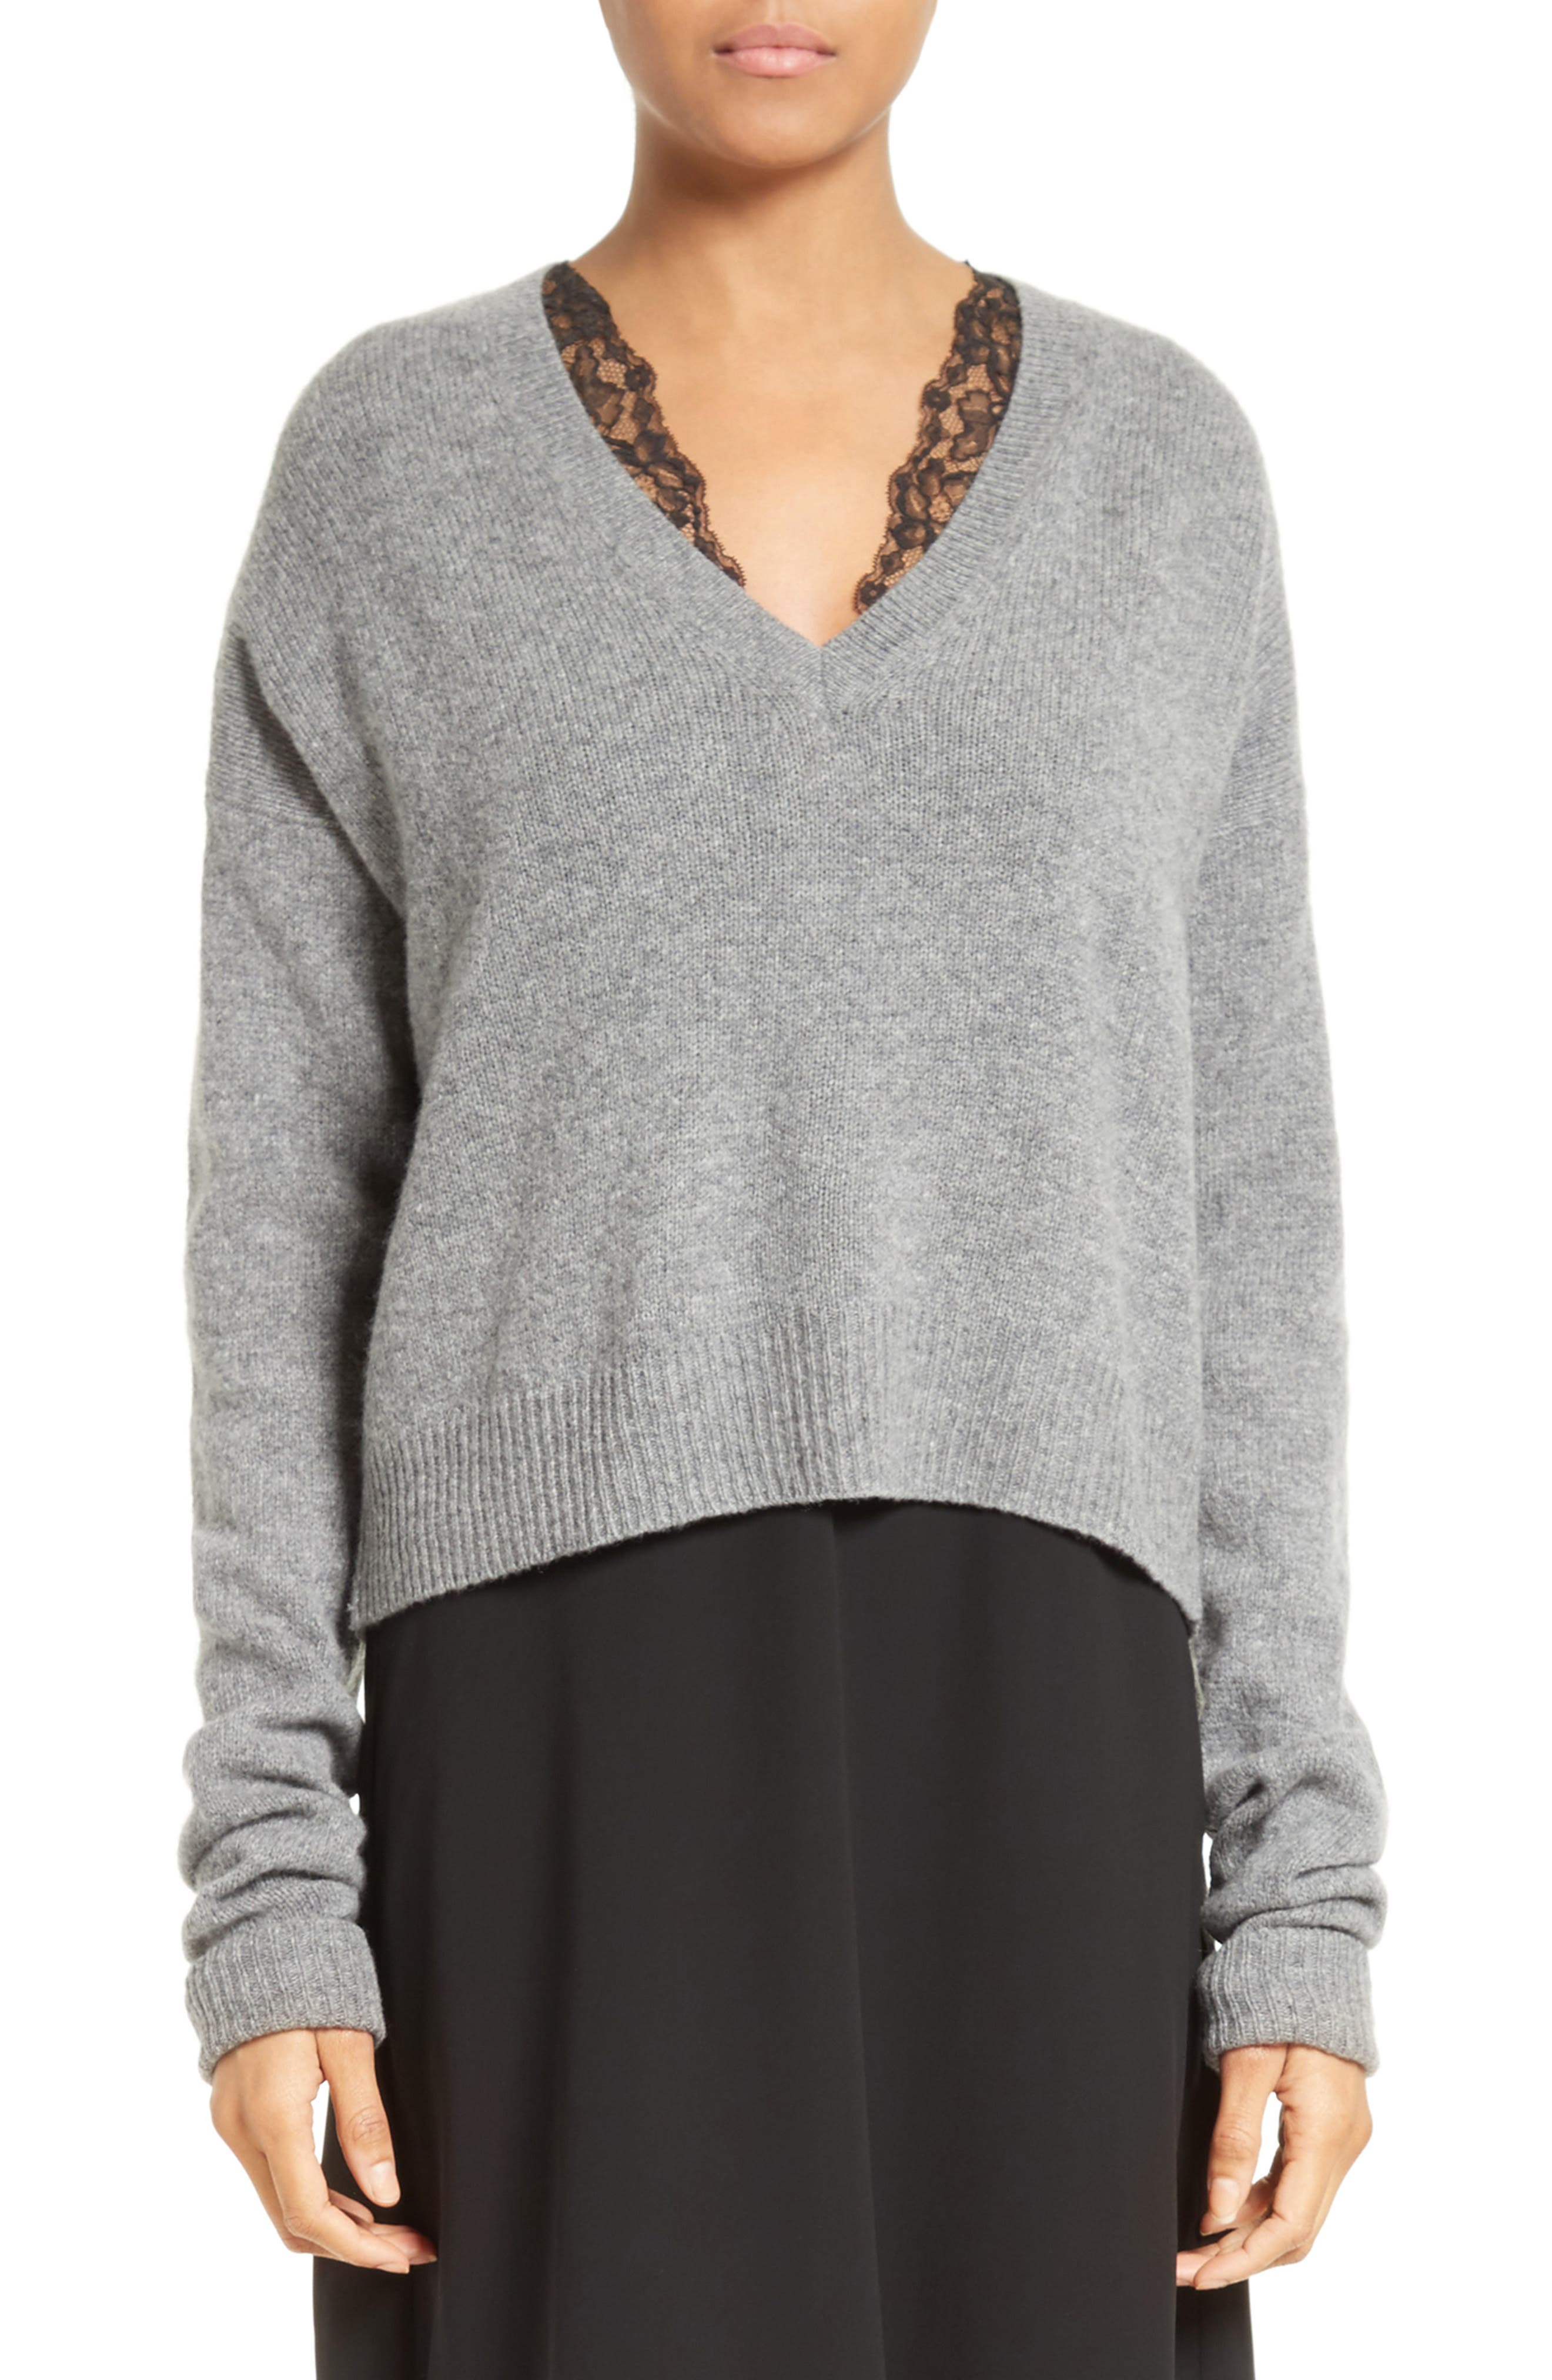 Alternate Image 1 Selected - McQ Alexander McQueen Wool & Cashmere Cutout Sweater